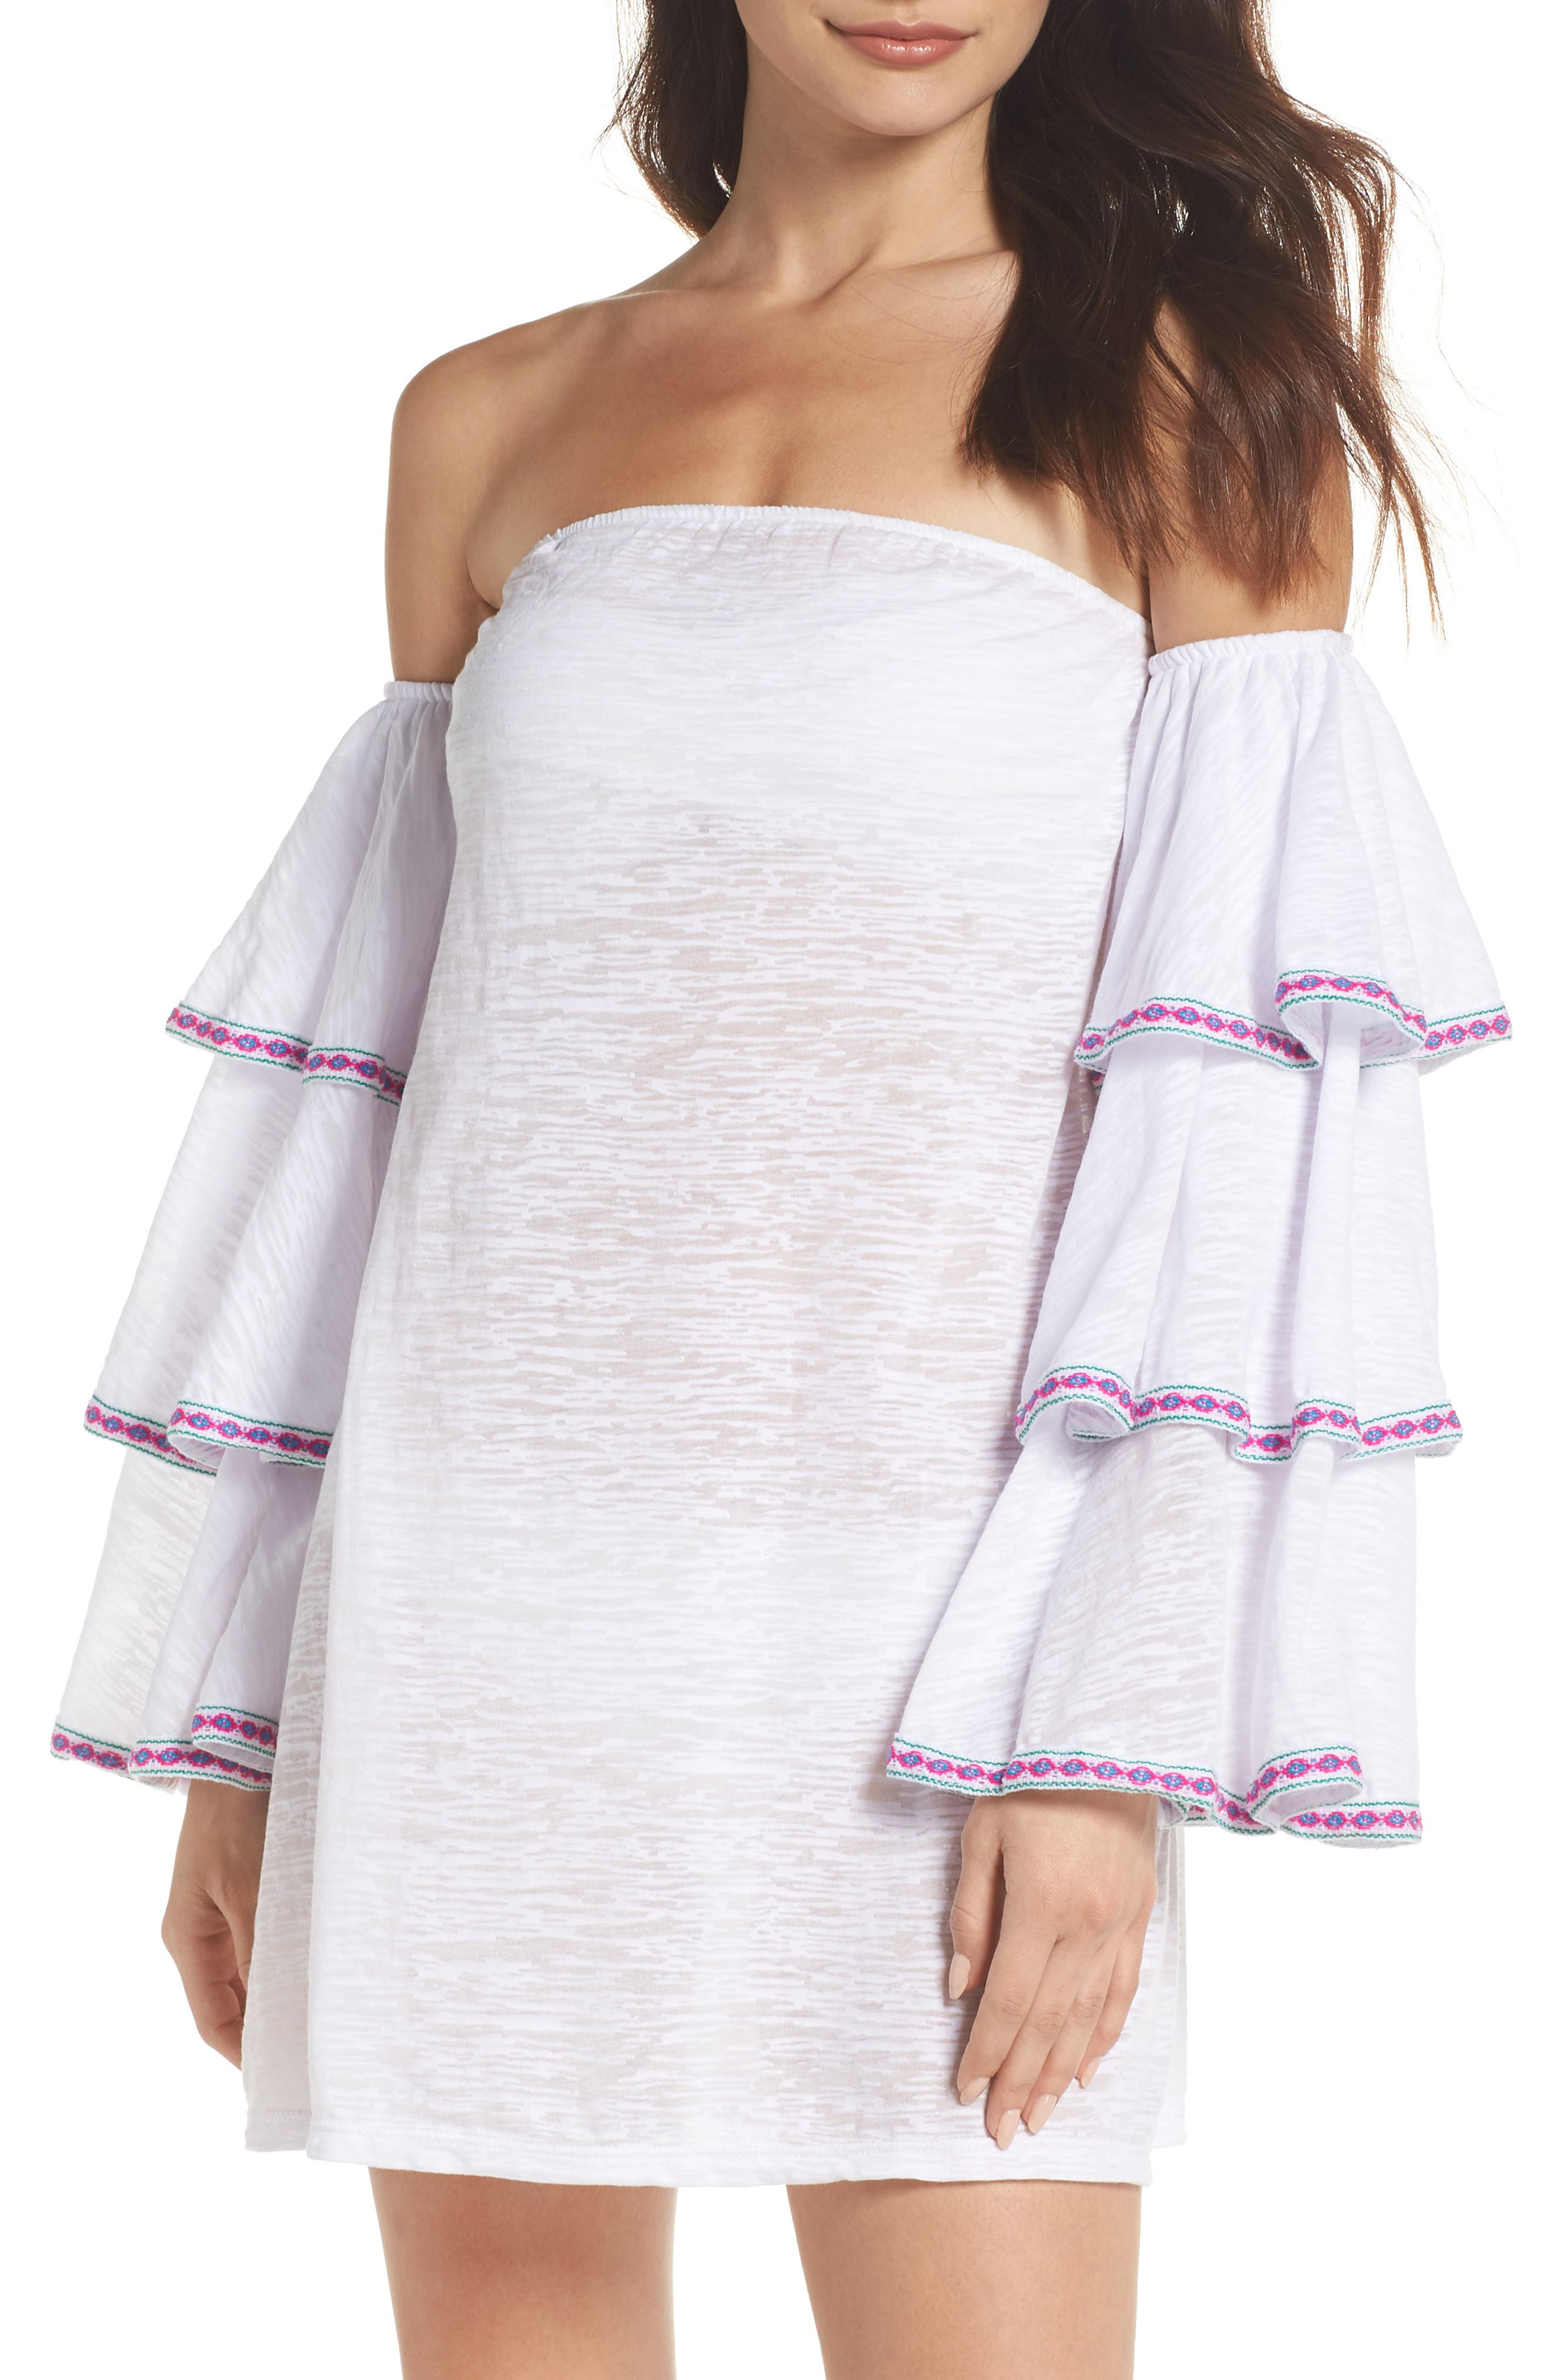 Off the Shoulder Cover-Up Dress,                             Main thumbnail 1, color,                             100